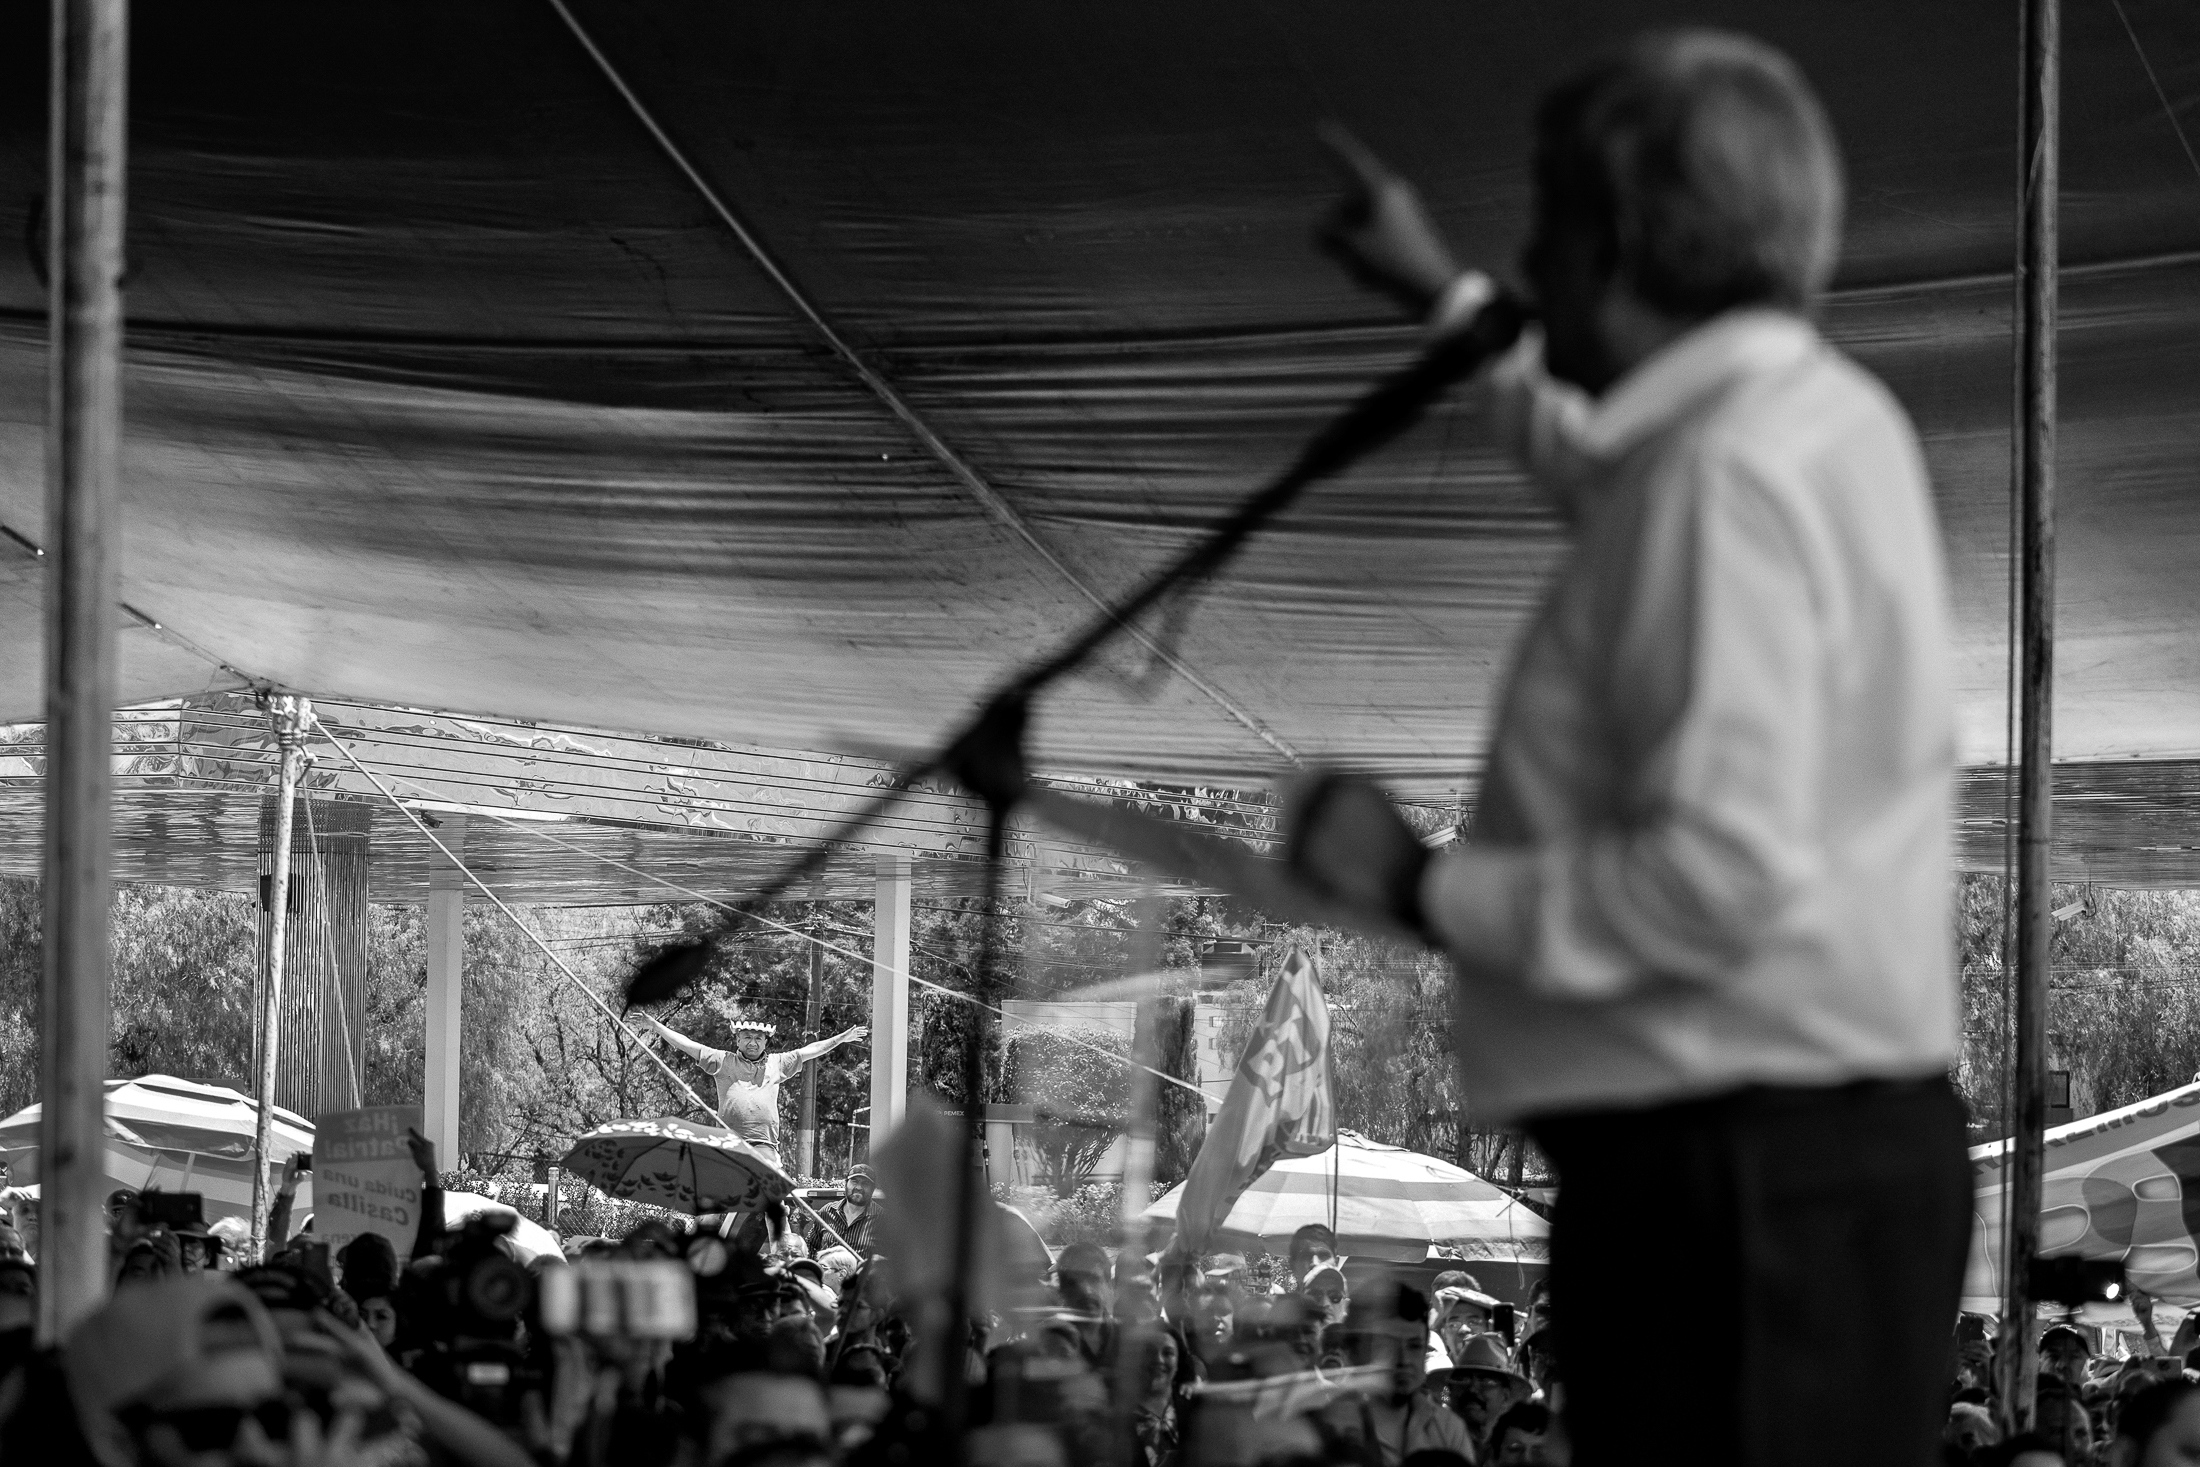 Art and Documentary Photography - Loading 13-18-amlo_180413-1287-w.jpg